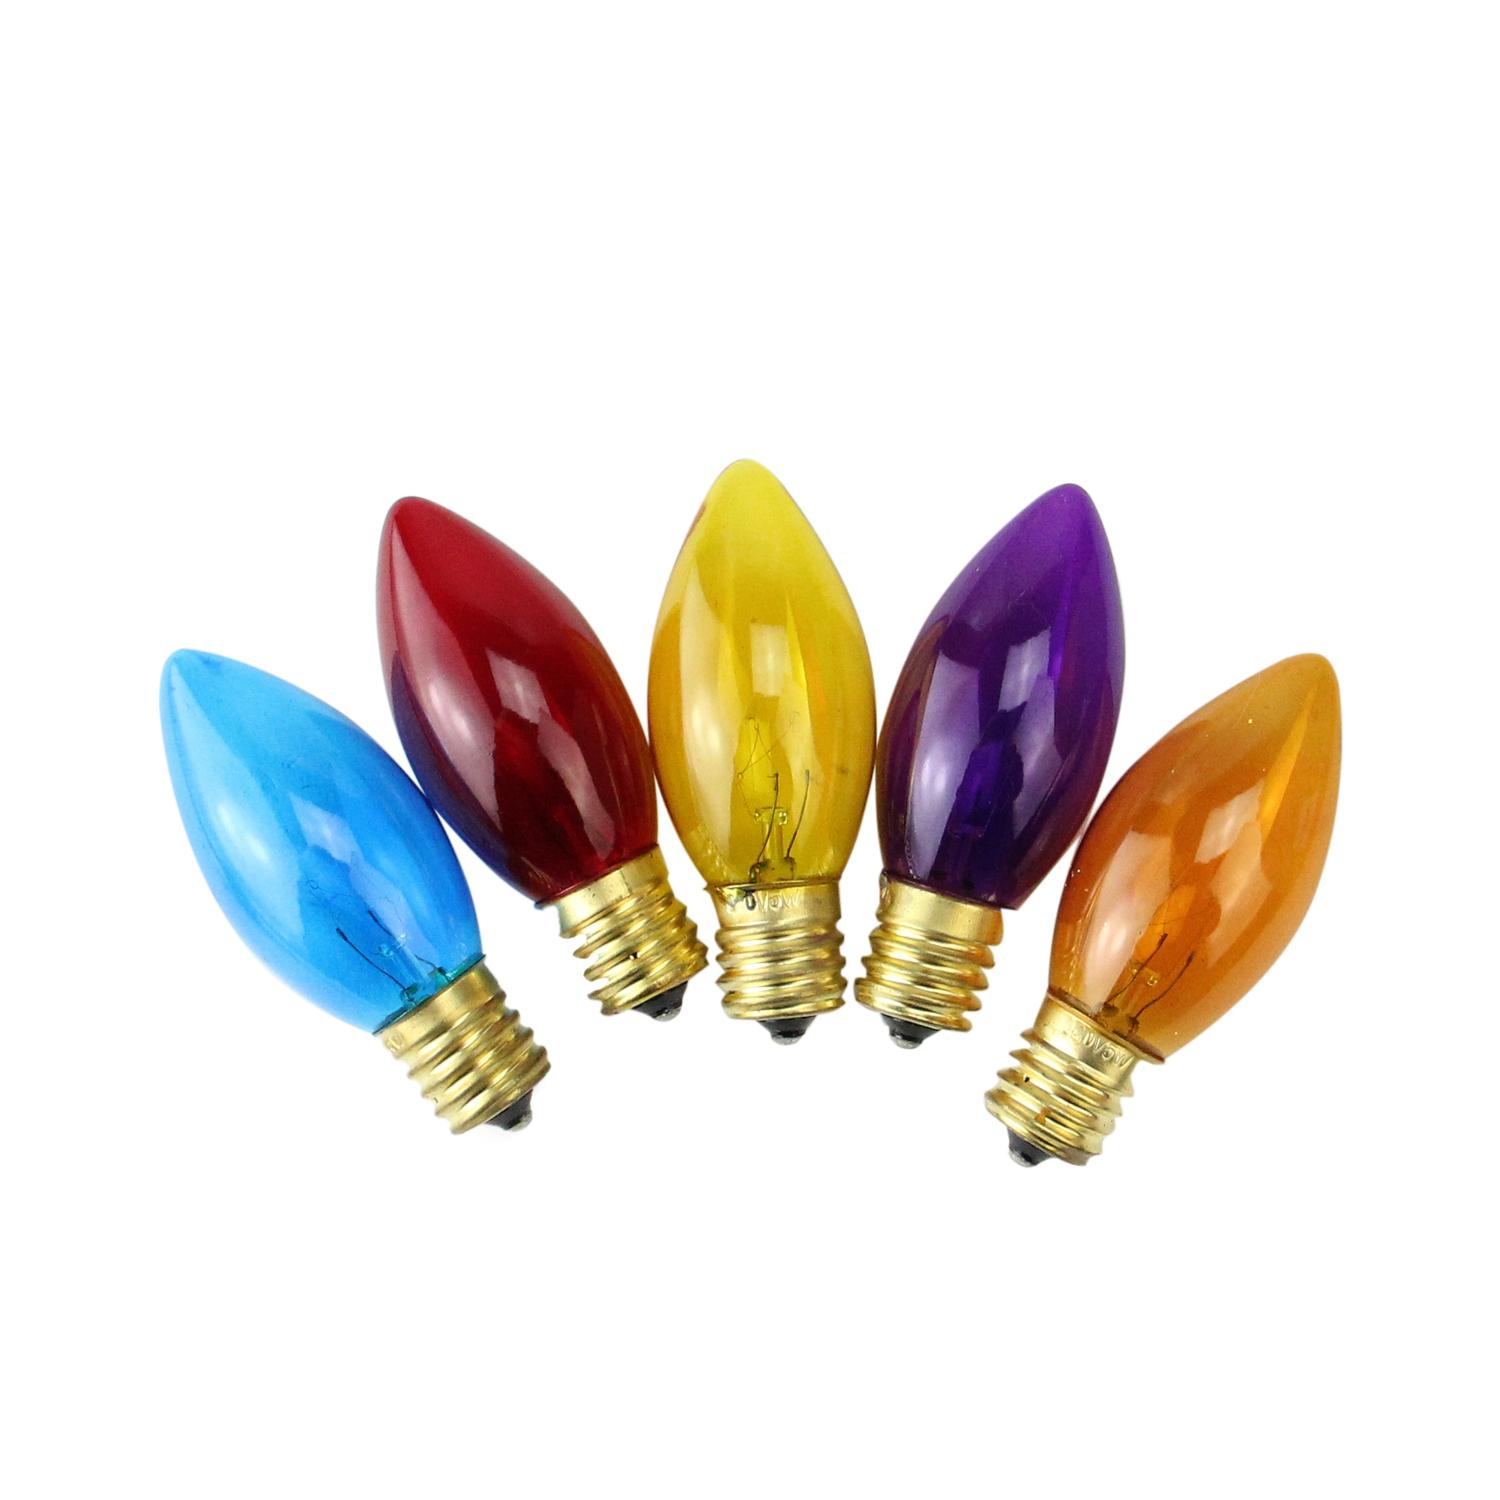 Pack of 25 Incandescent C9 Multi-Color Christmas Replacement Bulbs